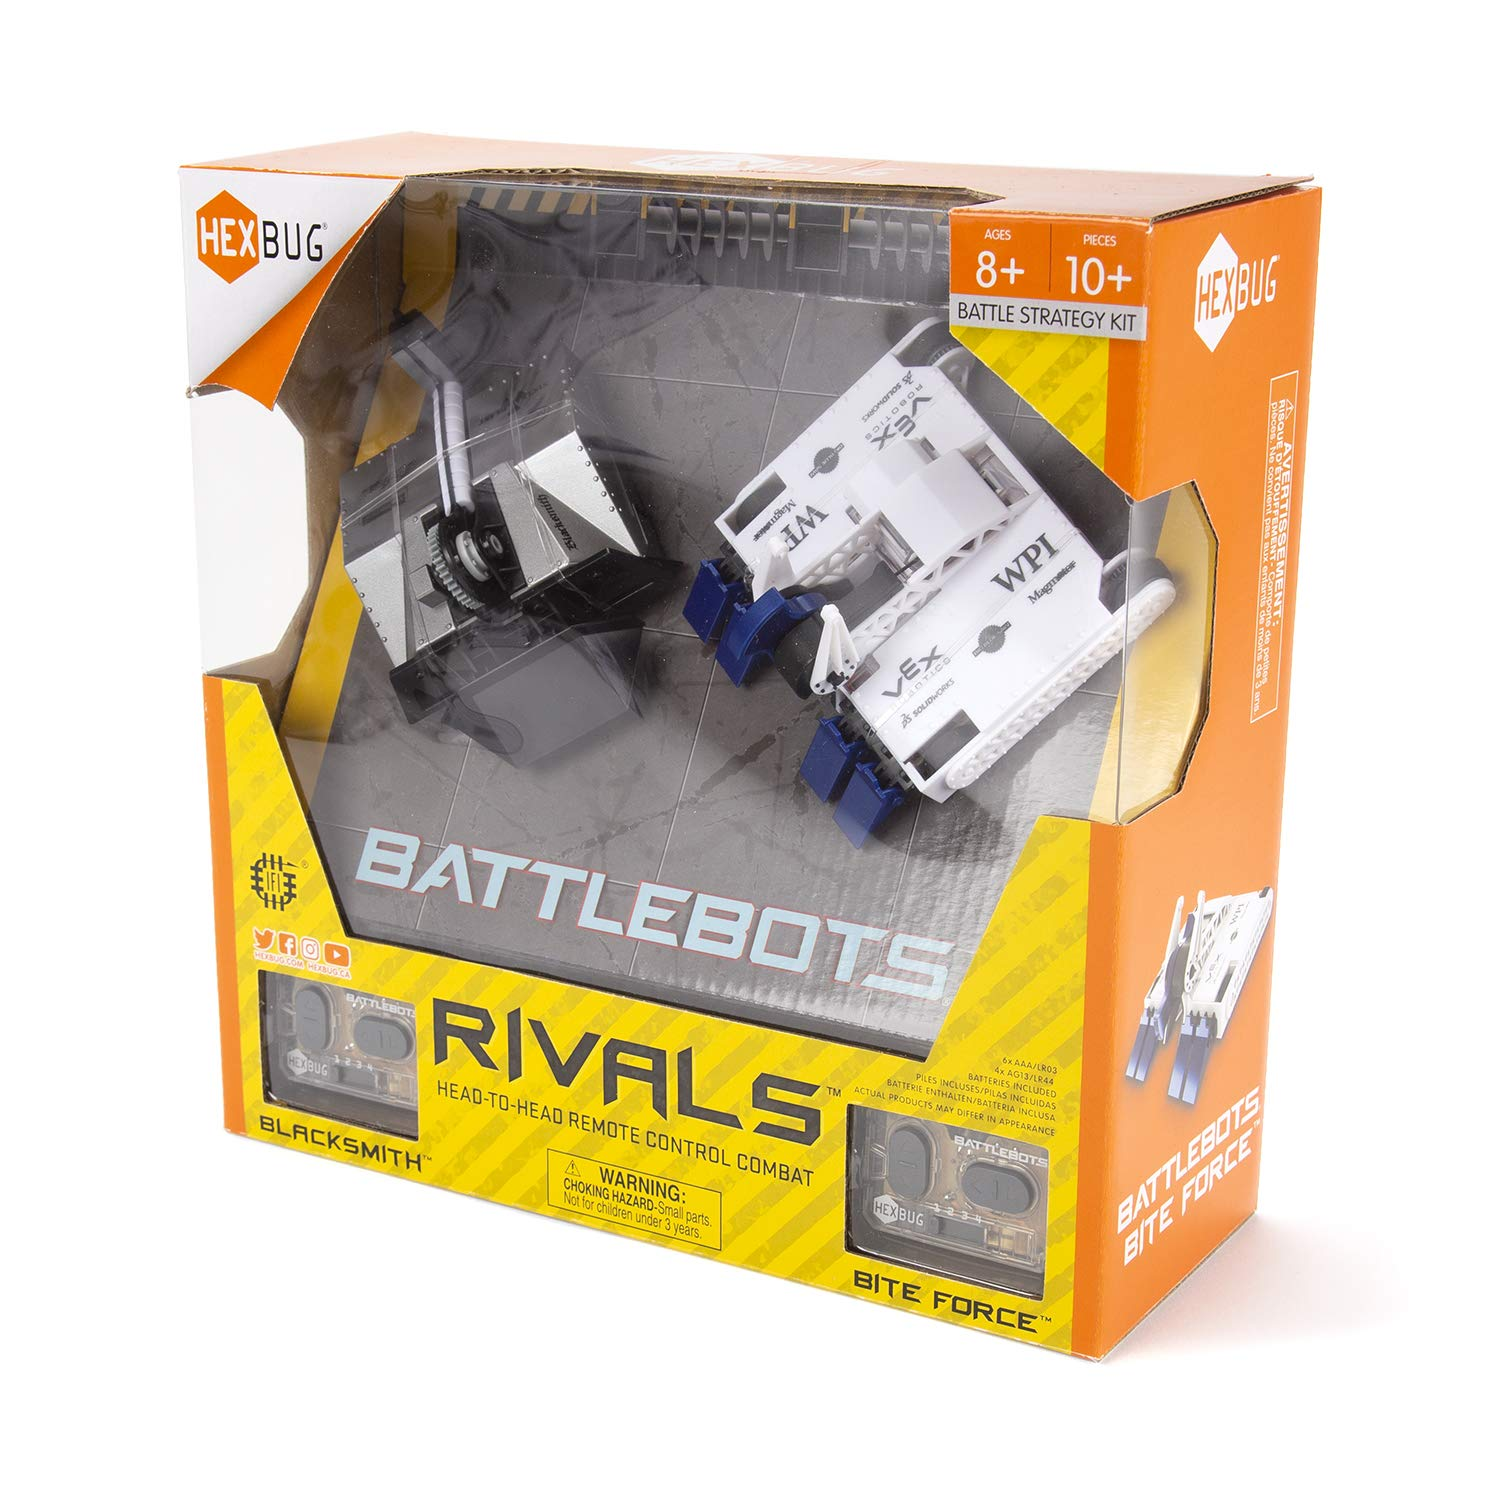 HEXBUG BattleBots Rivals 4.0 (Blacksmith and Biteforce) Toys for Kids, Fun Battle Bot Hex Bugs Black Smith and Bite Force by HEXBUG (Image #4)